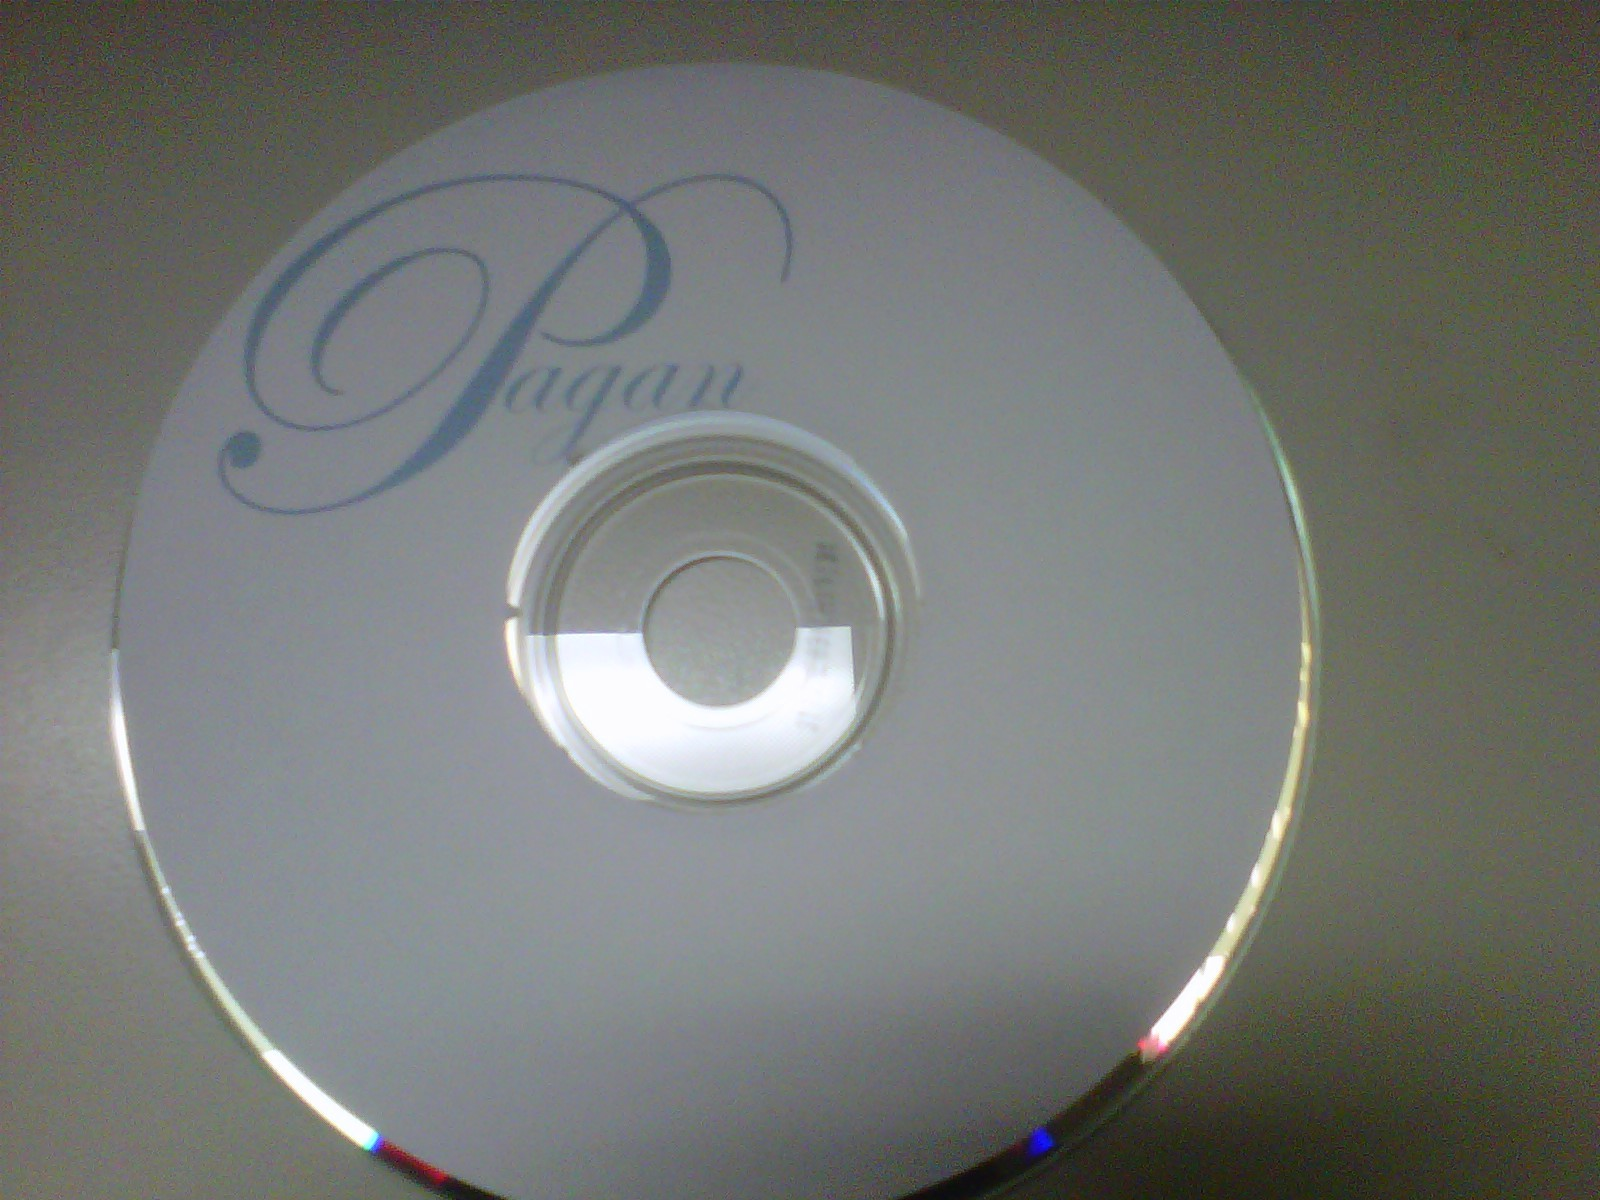 blue, Custom, Tiffany, Name, With, In, Our, Dvd, Last, Printed, Pagan